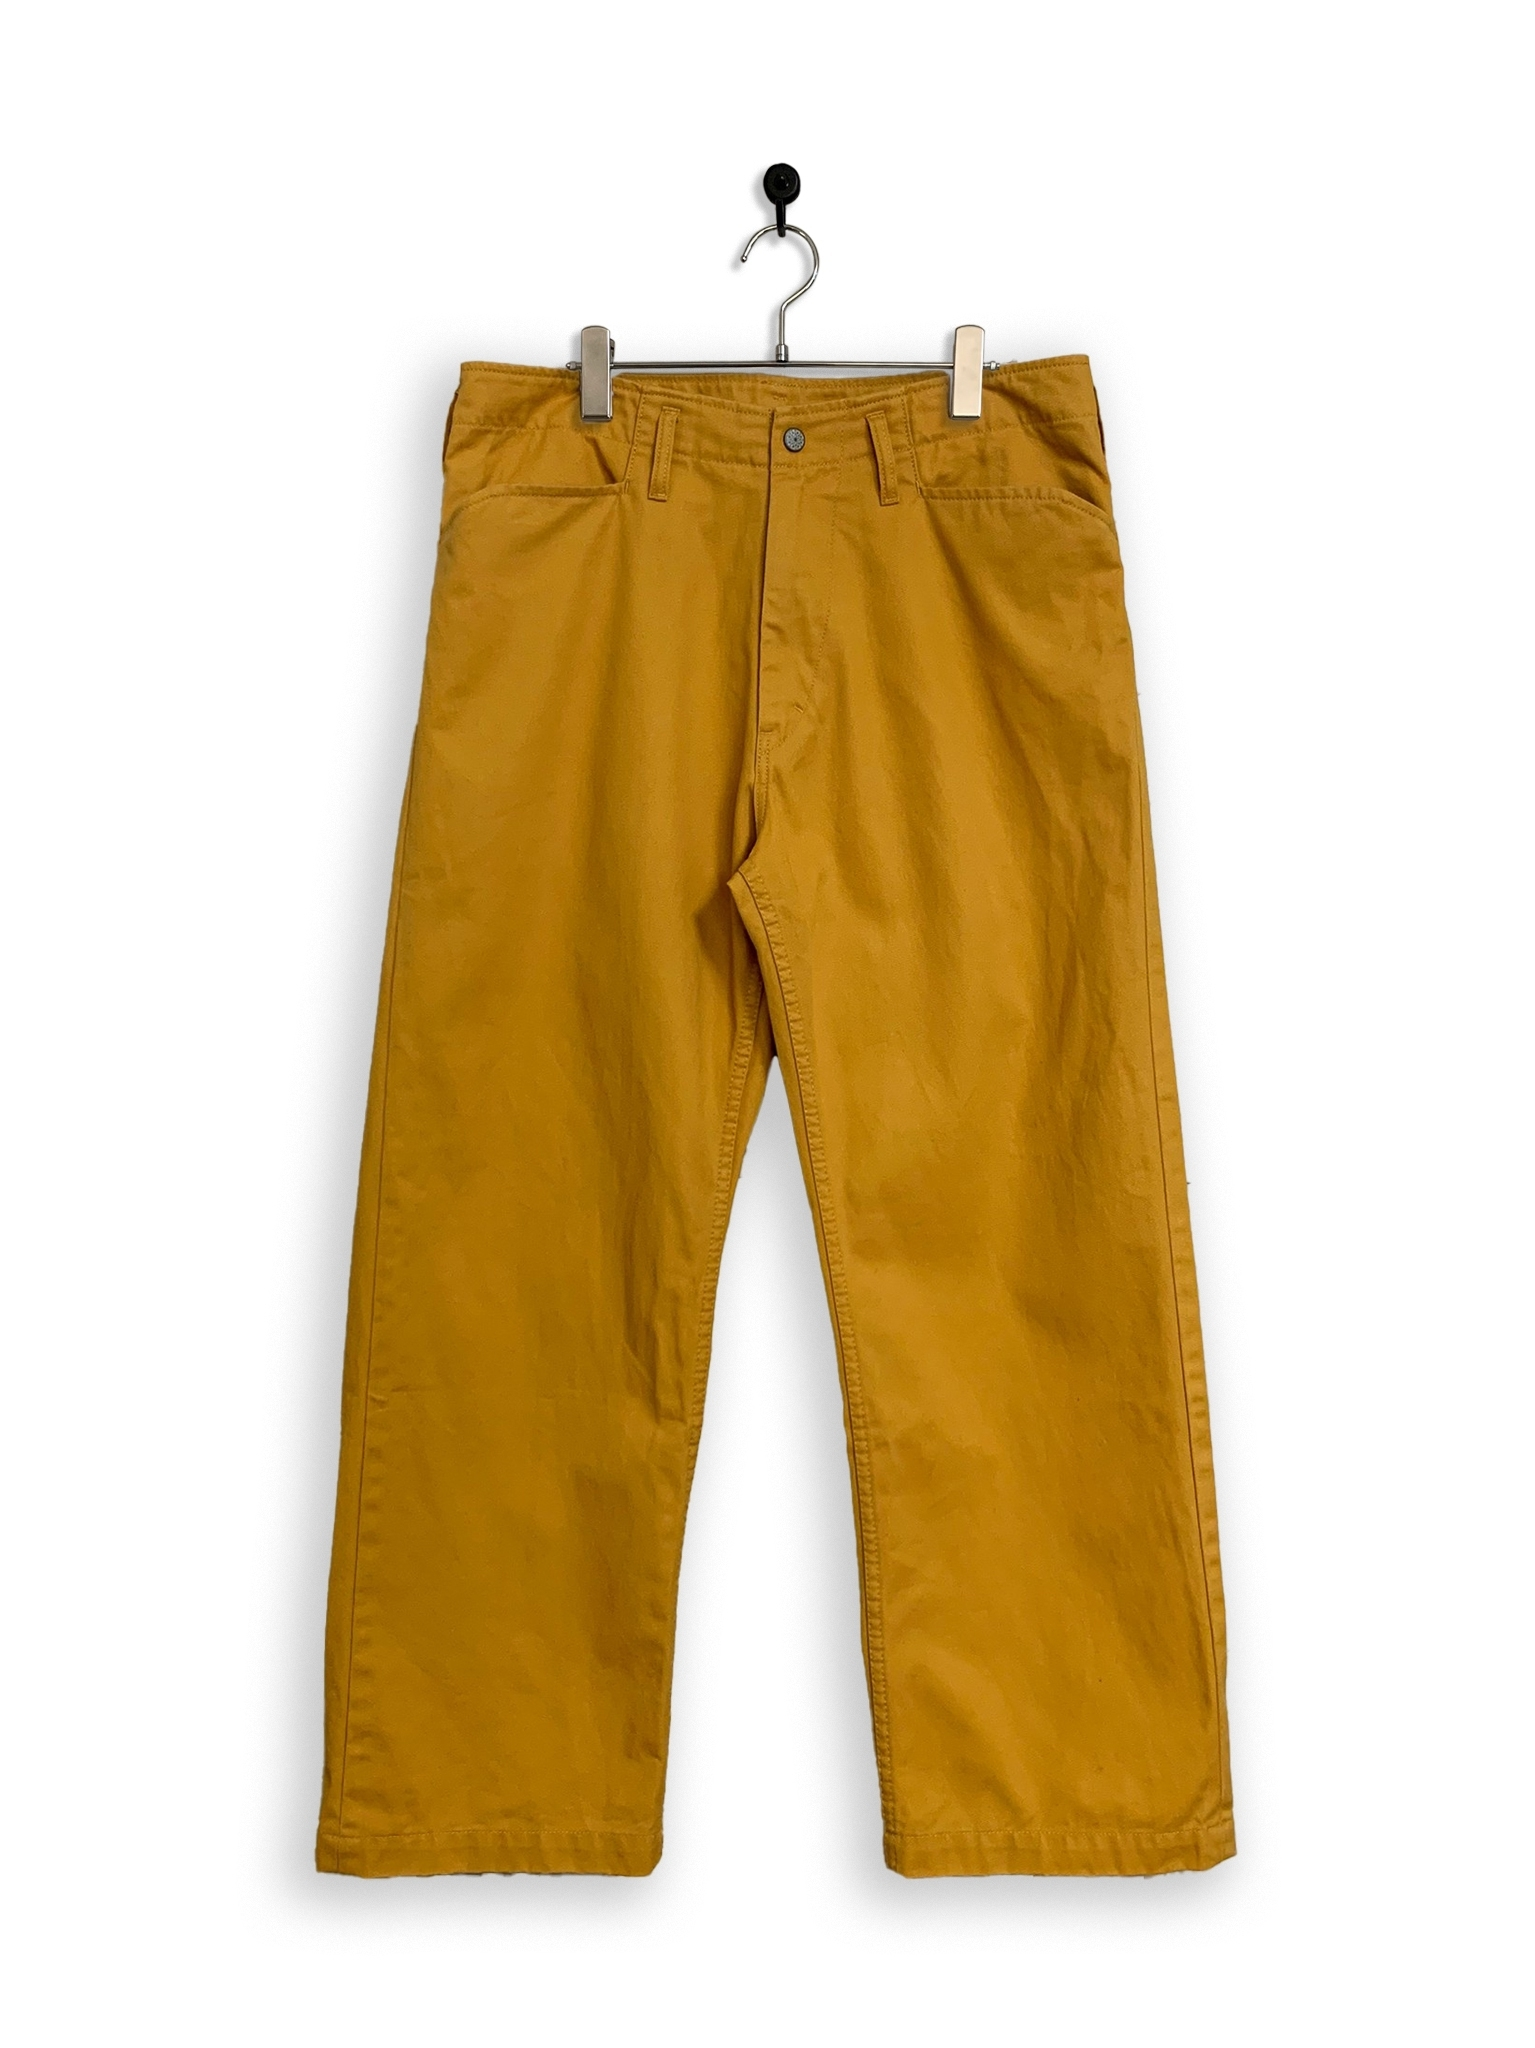 Cotton Twill Frisco Pants/ mustard